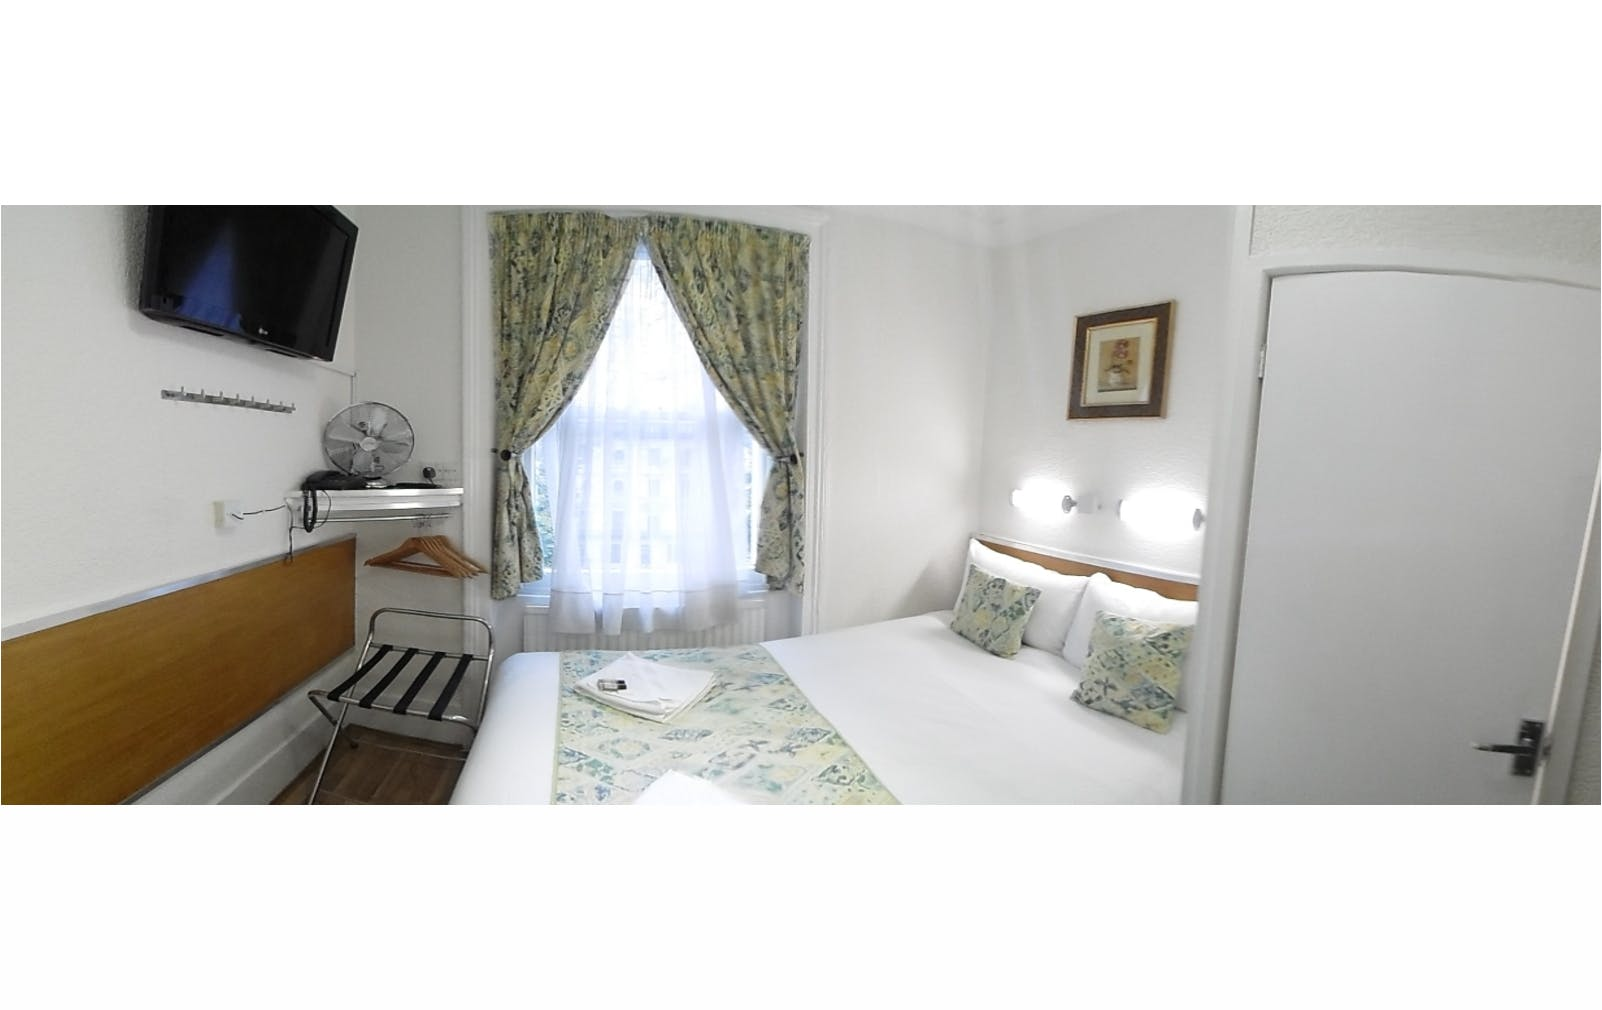 Hotel central London B&B Accommodation double ensuite